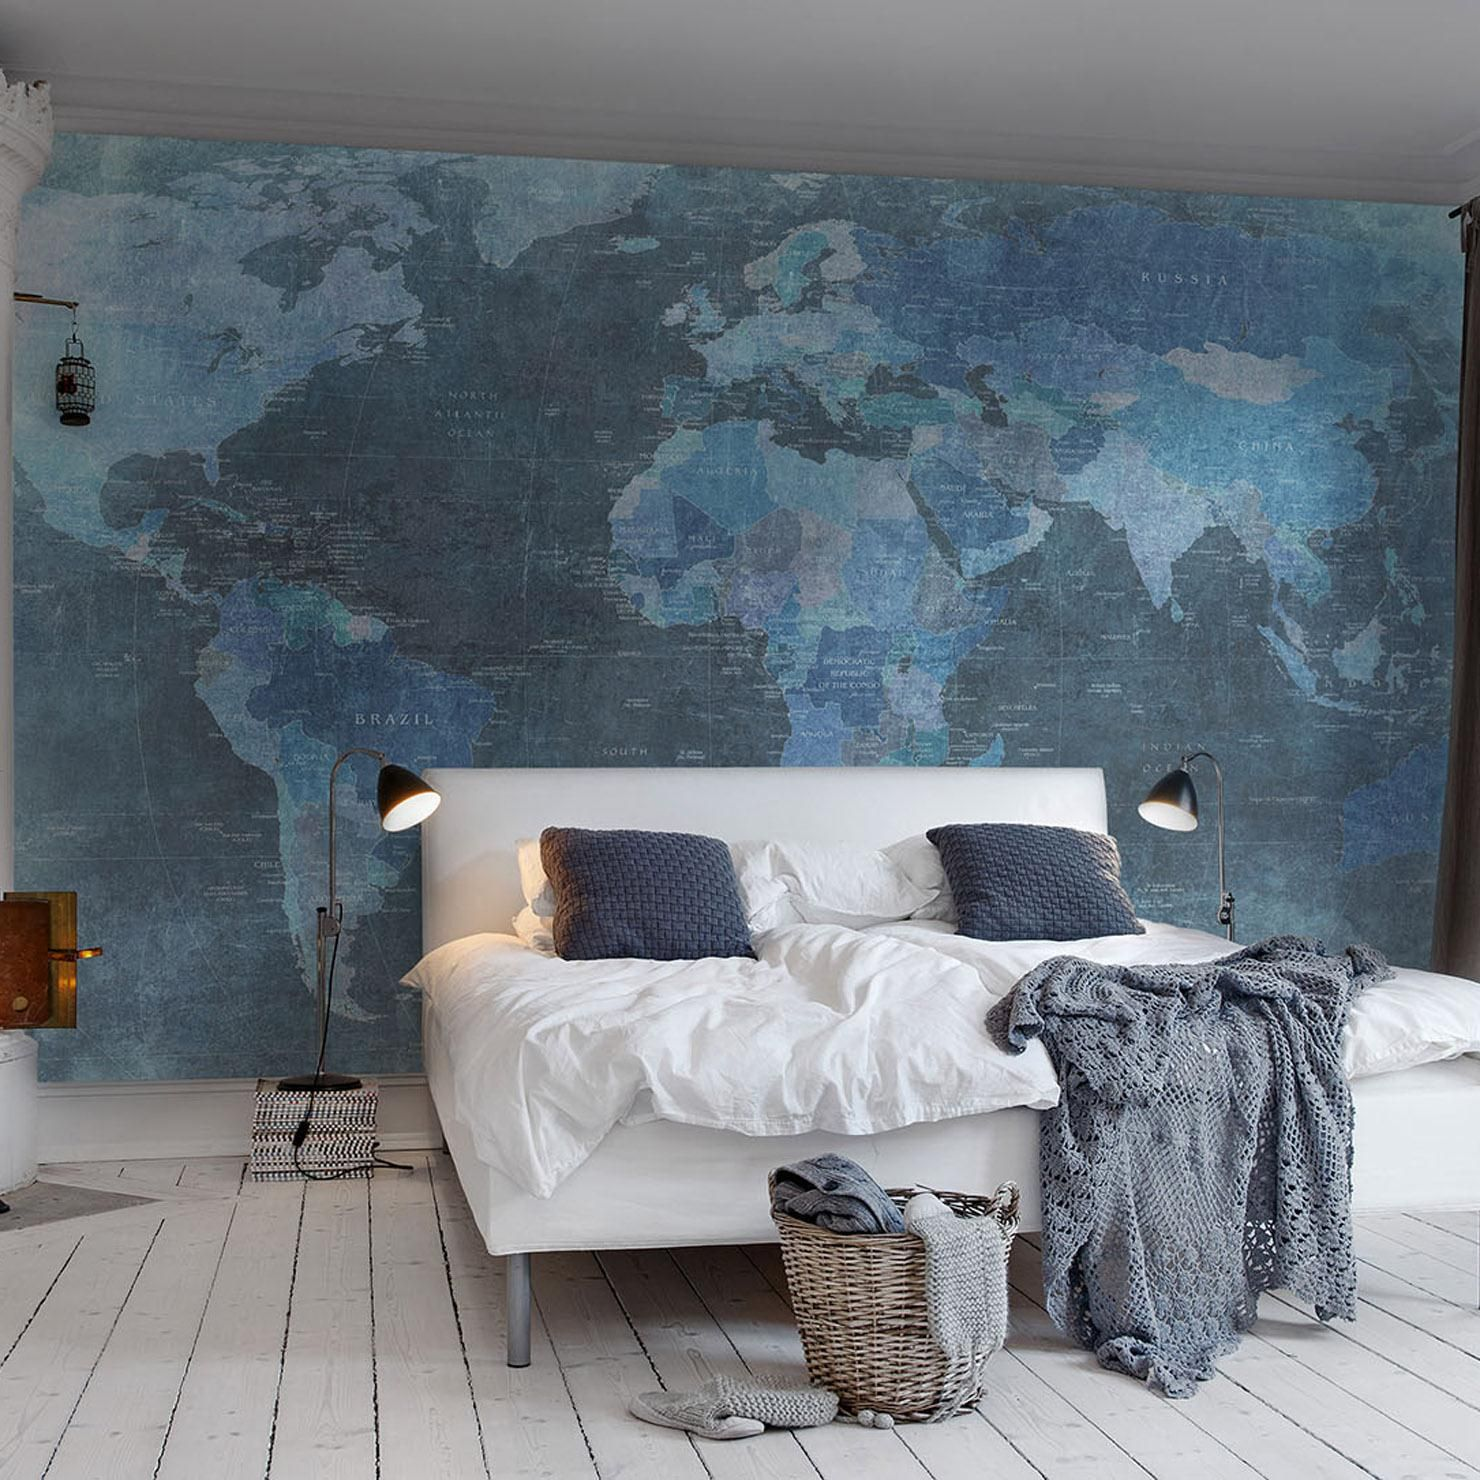 Awesome world map wallpaper ideas for bedroom home sweet home world map mural removable wallpapers wallpaper store online online murals gumiabroncs Images